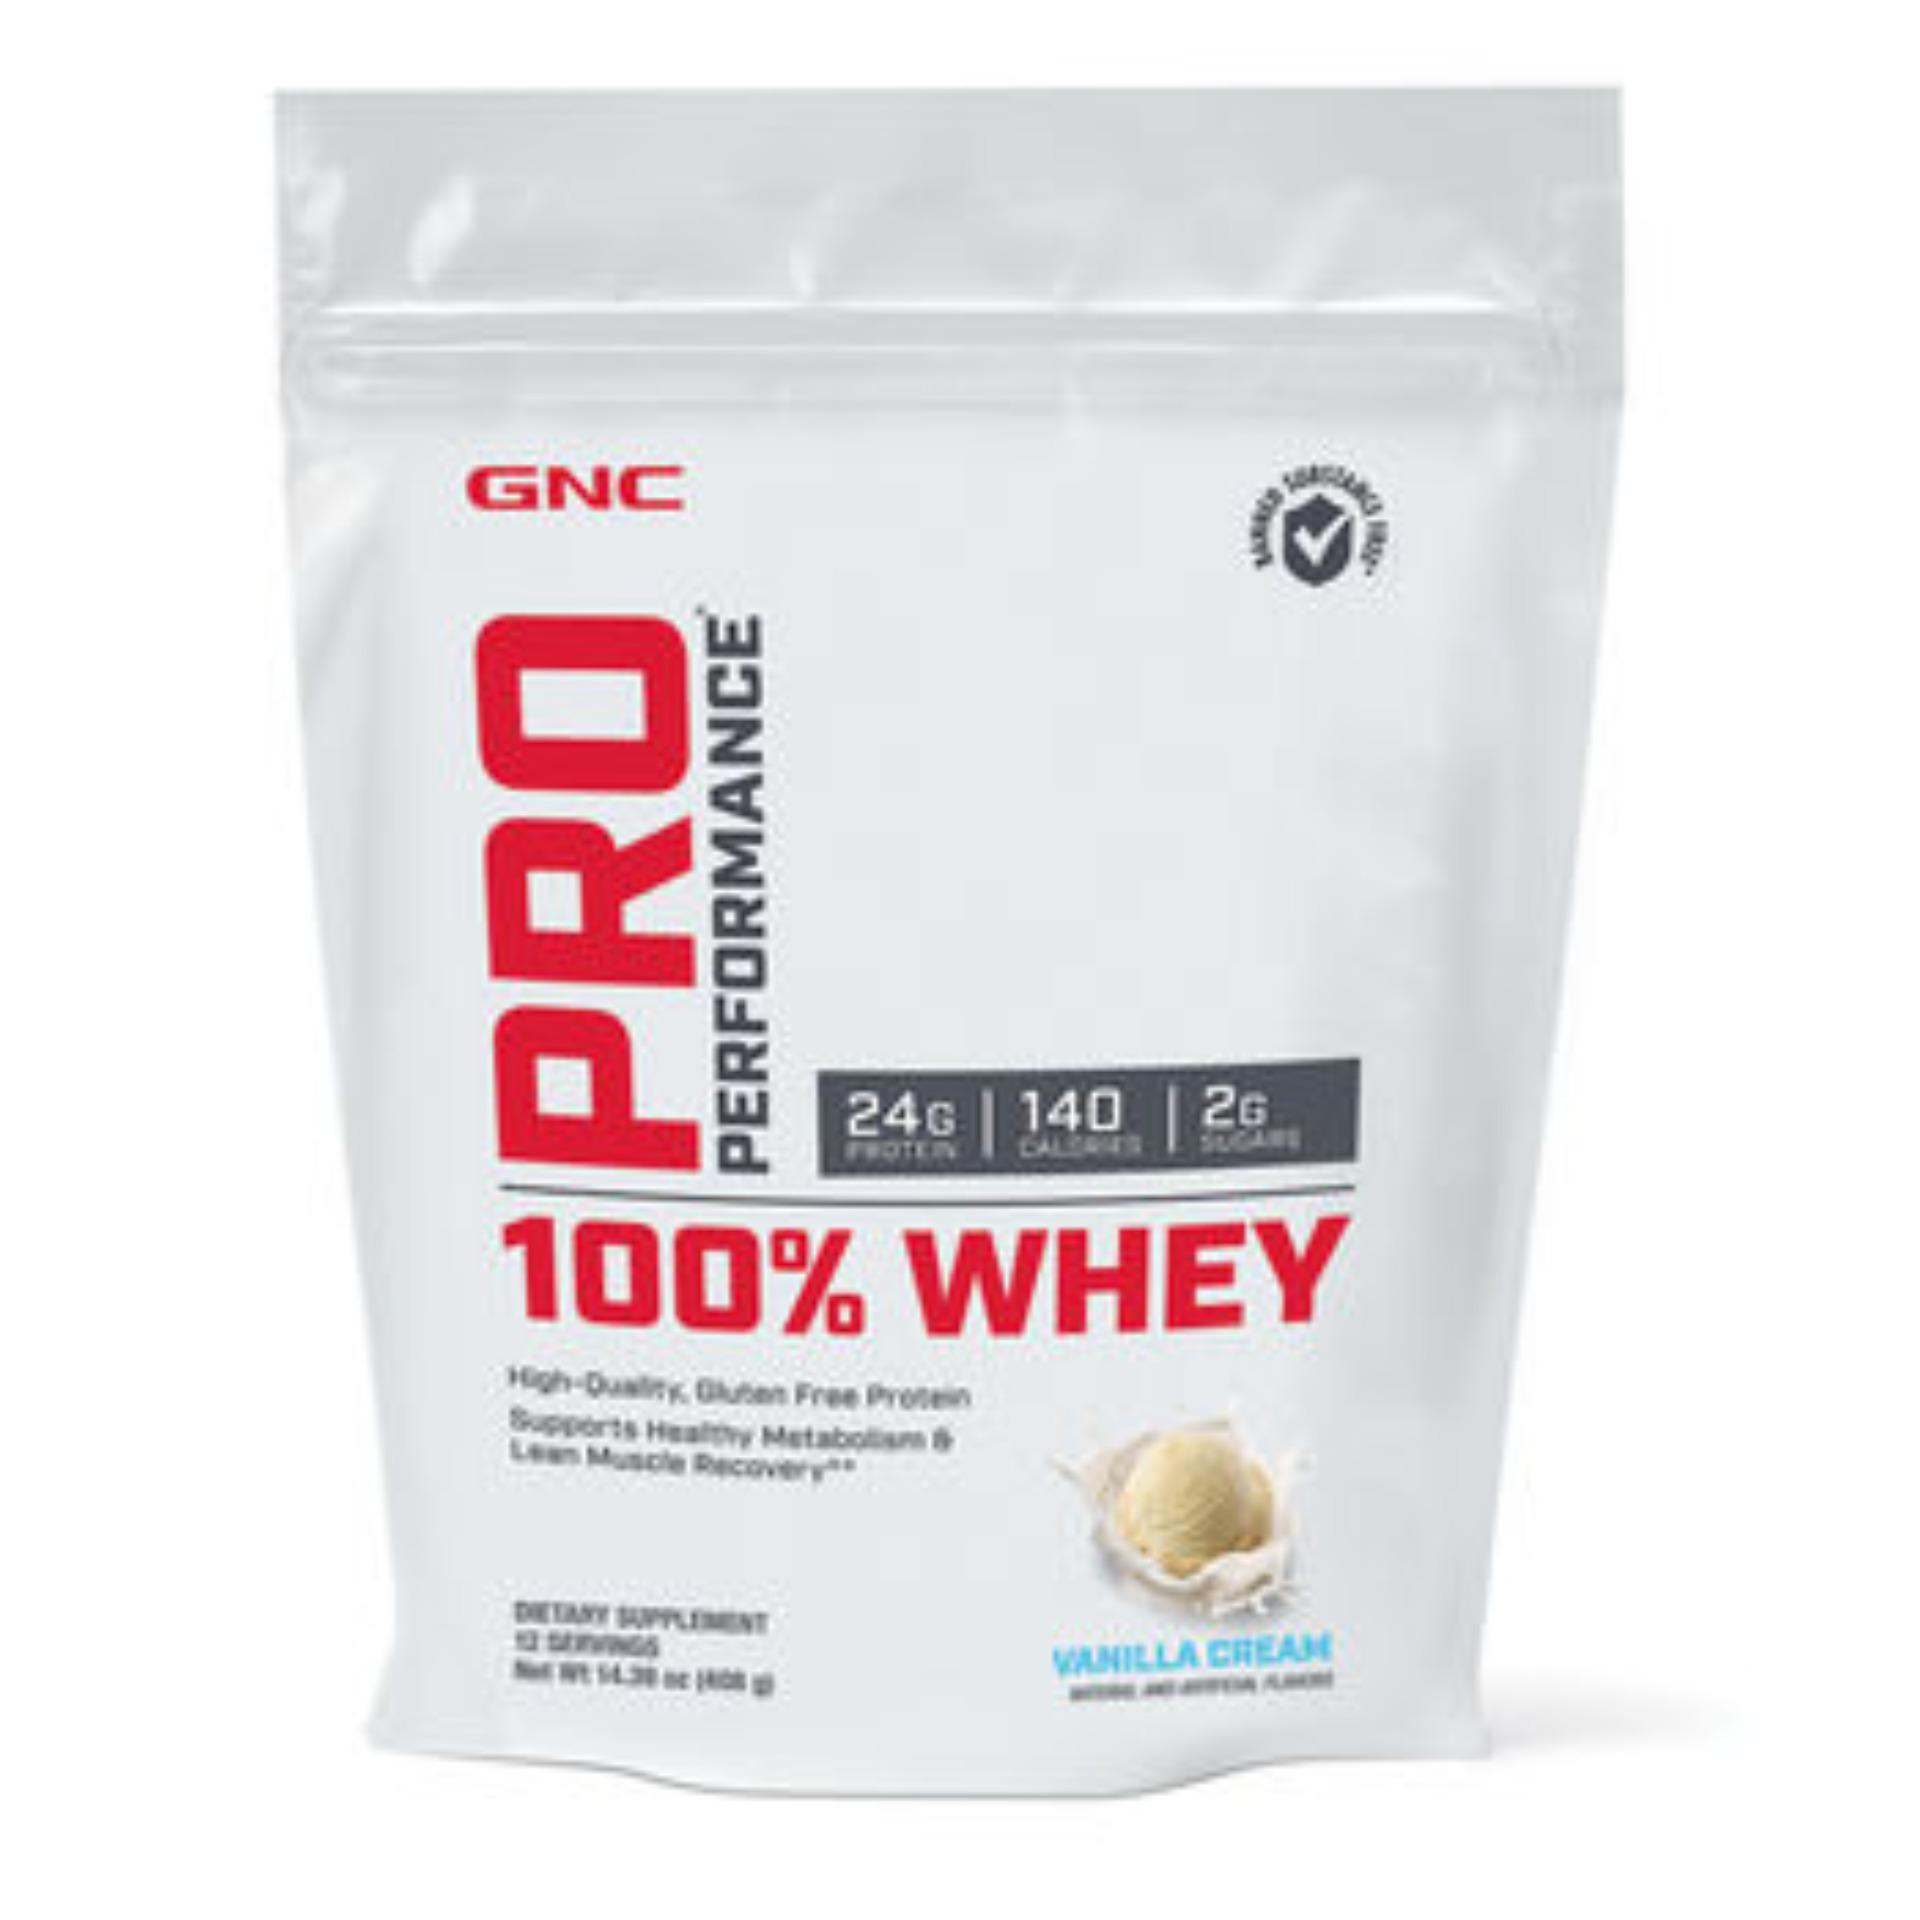 Bvlgarignc Buy At Best Price In Bangladesh Www Breeding 40ml Pro Performance 100 Whey Protein Vanilla Cream